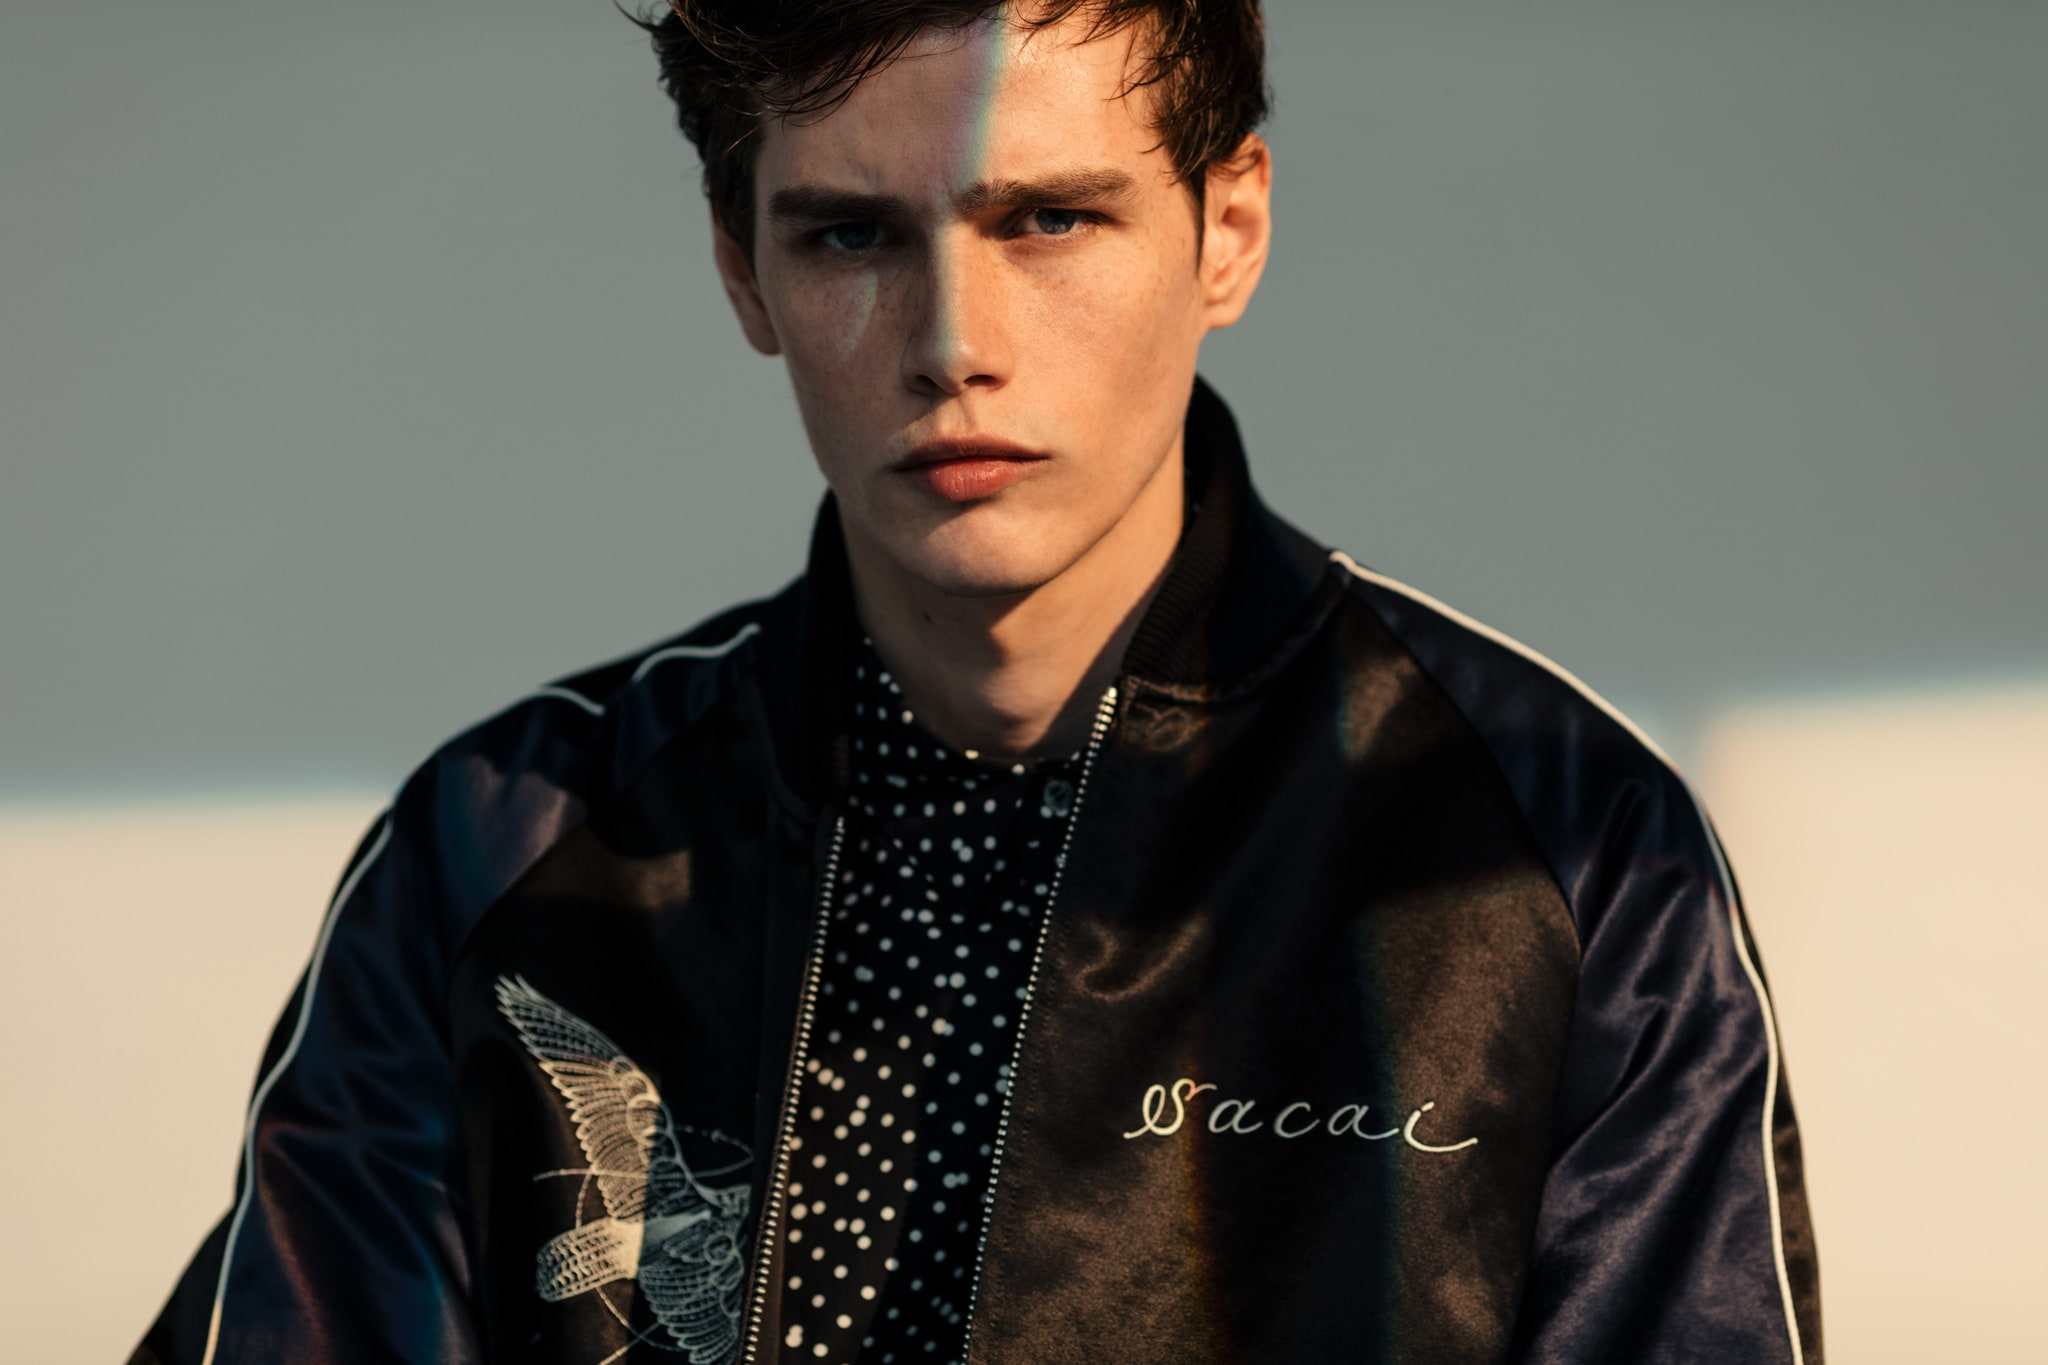 HAVEN sacai Spring Summer 2019 Editorial Dr. Woo Stadium Jacket Black Navy Dr. Woo Polka Dot Print Shirt